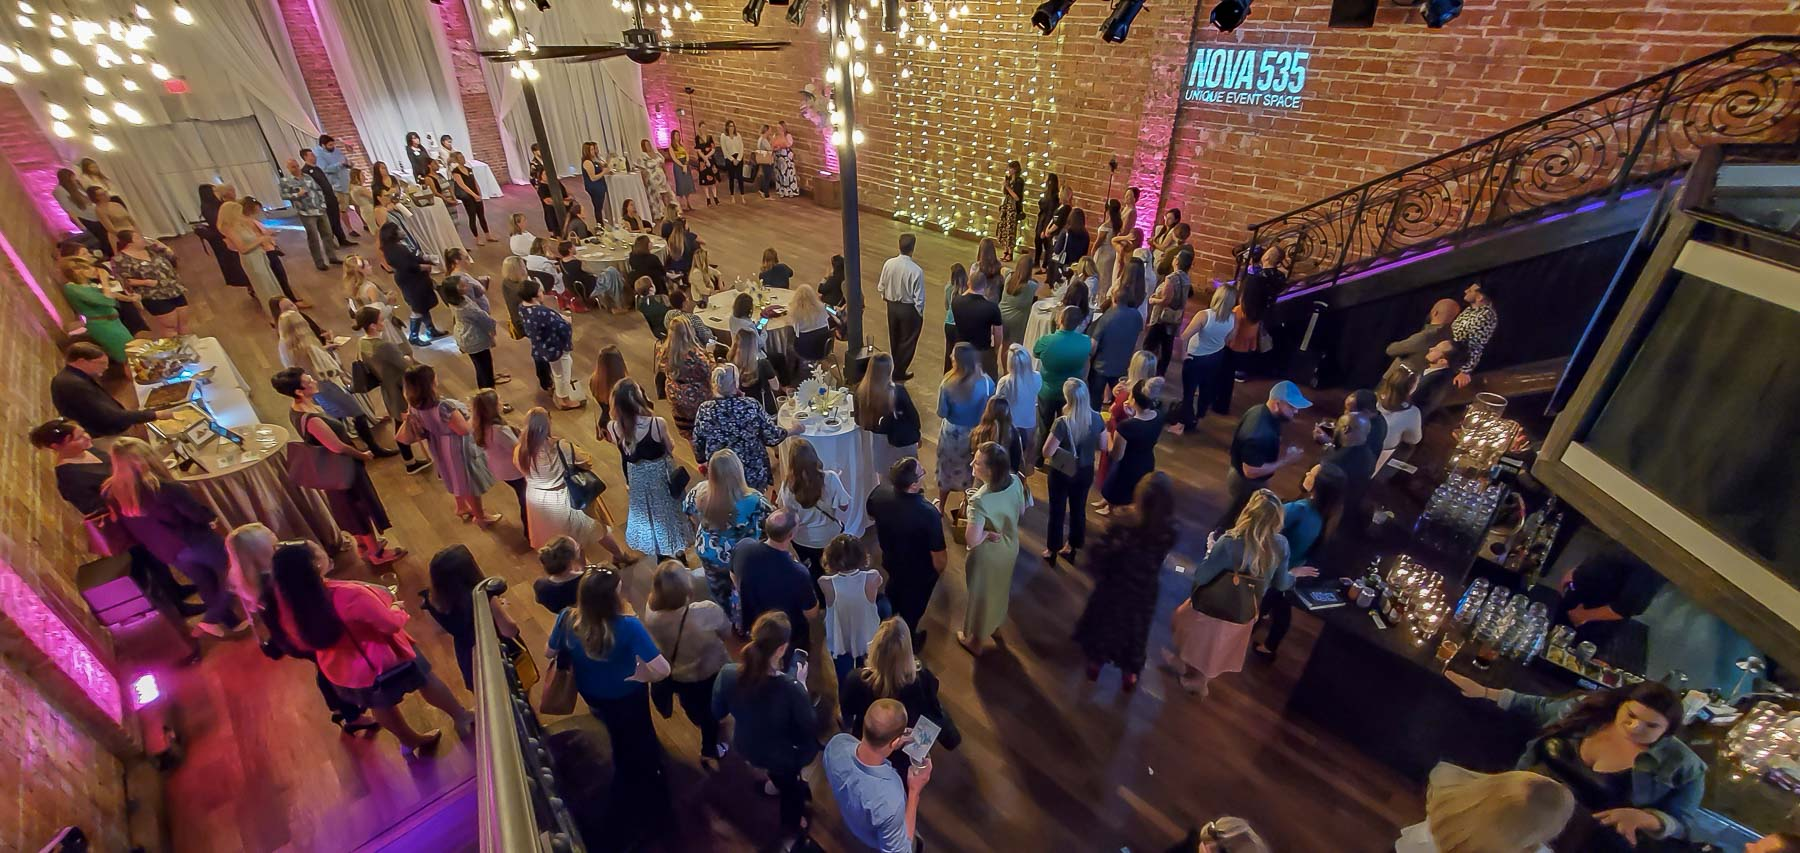 Tuesday March 10, 2020 at historic downtown St. Pete venue NOVA 535 Marry Me Tampa Bay, NACE and ABC gathered for the 2020 Tampa Bay Wedding Industry Mixer